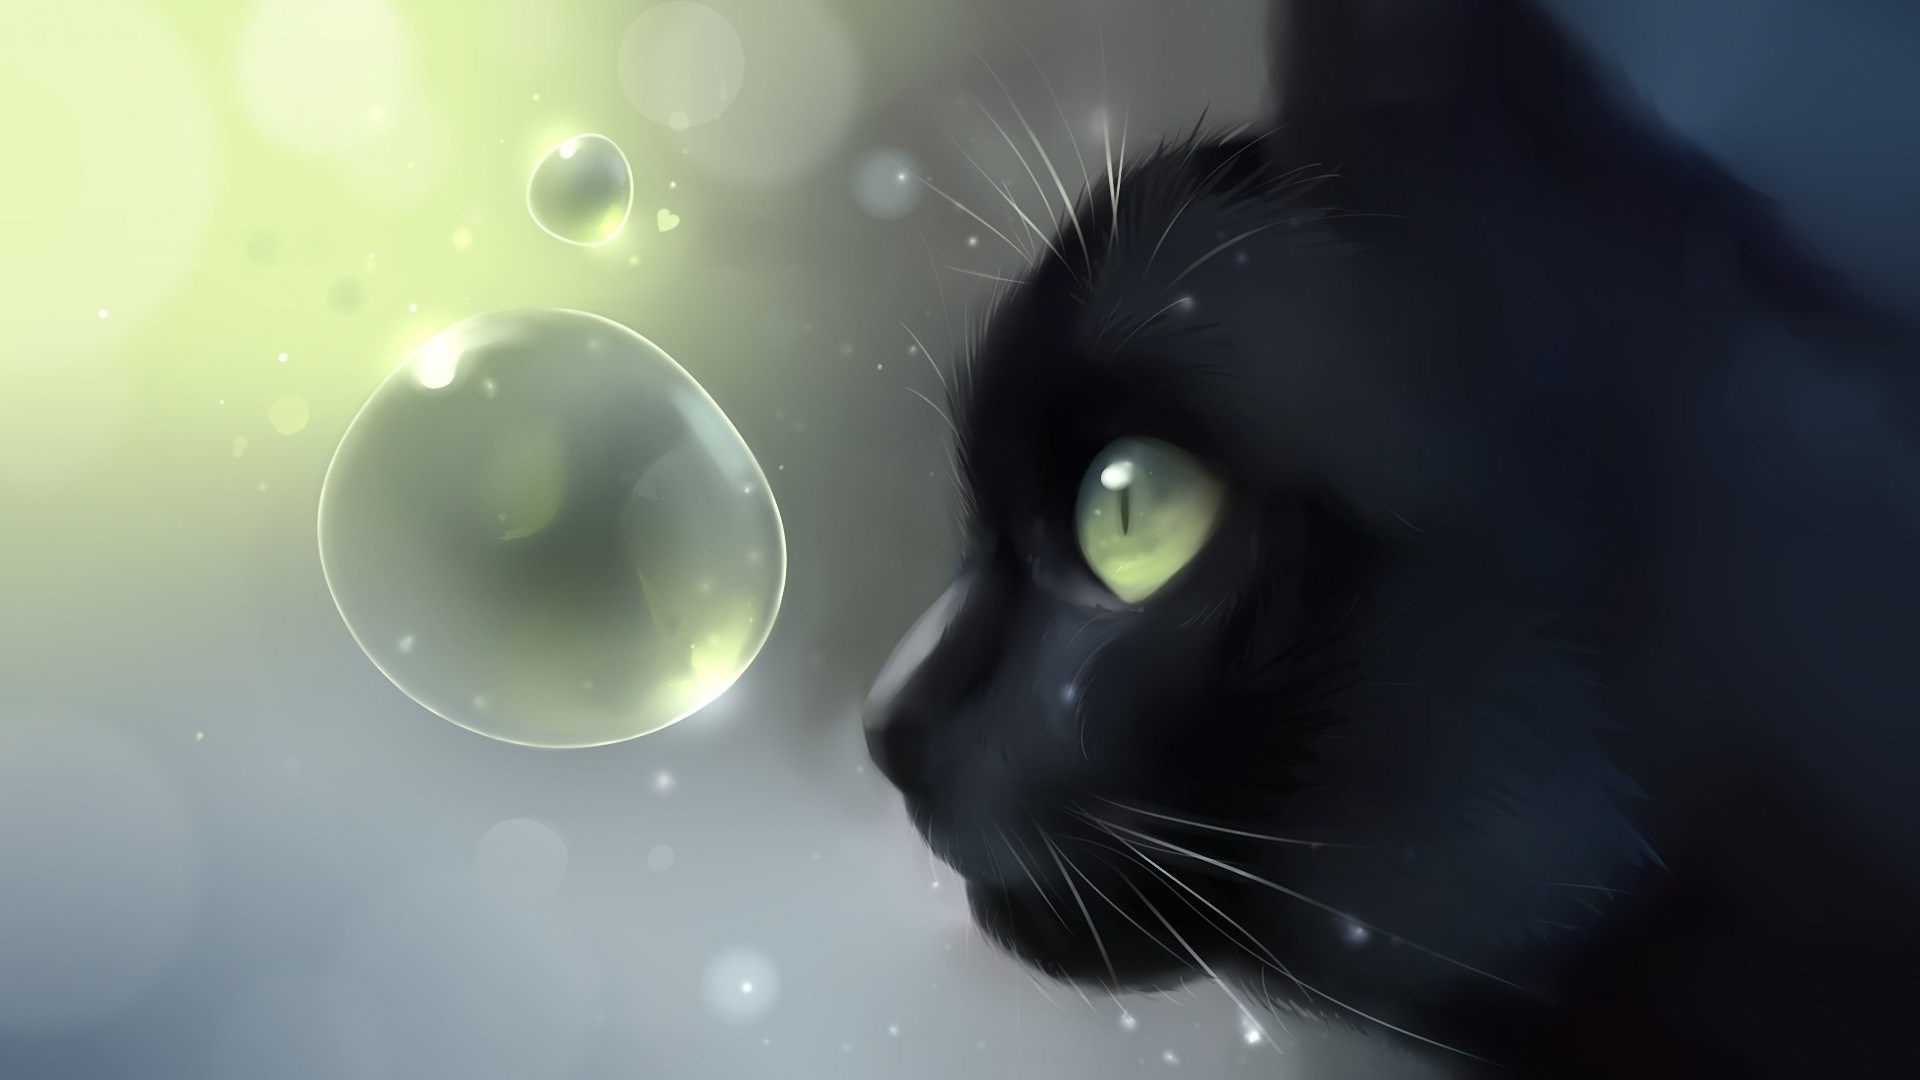 Free Download Showing Gallery For Cute Anime Black Cat Wallpaper 1920x1080 For Your Desktop Mobile Tablet Explore 43 Black Cat Anime Wallpaper Black Cat Wallpapers Cute Anime Cat Wallpaper